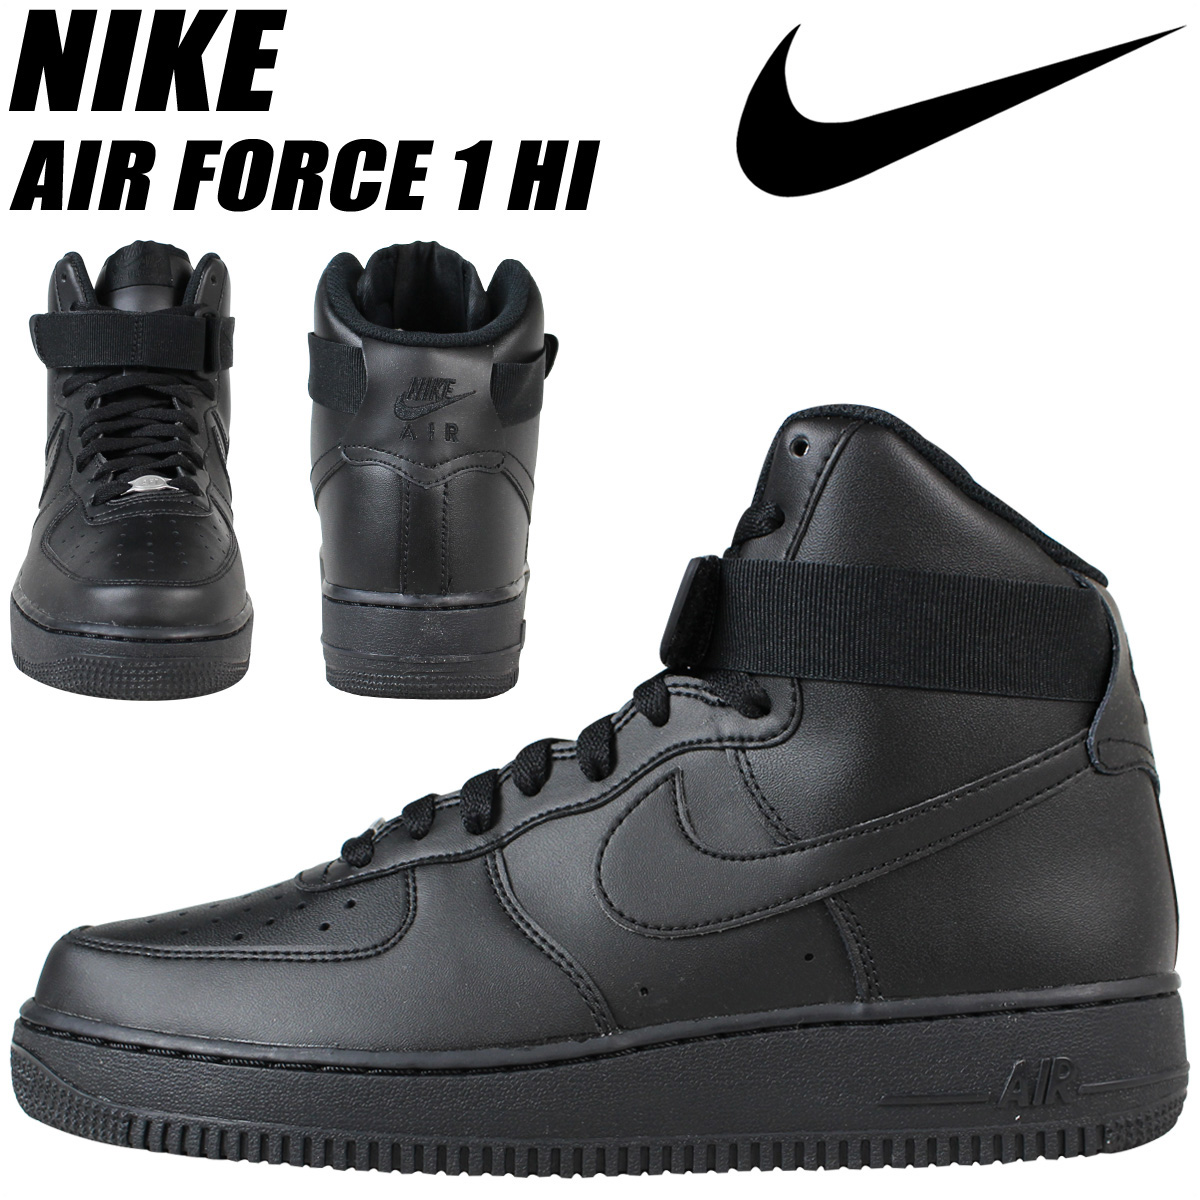 NIKE Nike air force sneakers AIR FORCE 1 HI 07 air force 1 315,121-032  men's shoes black black